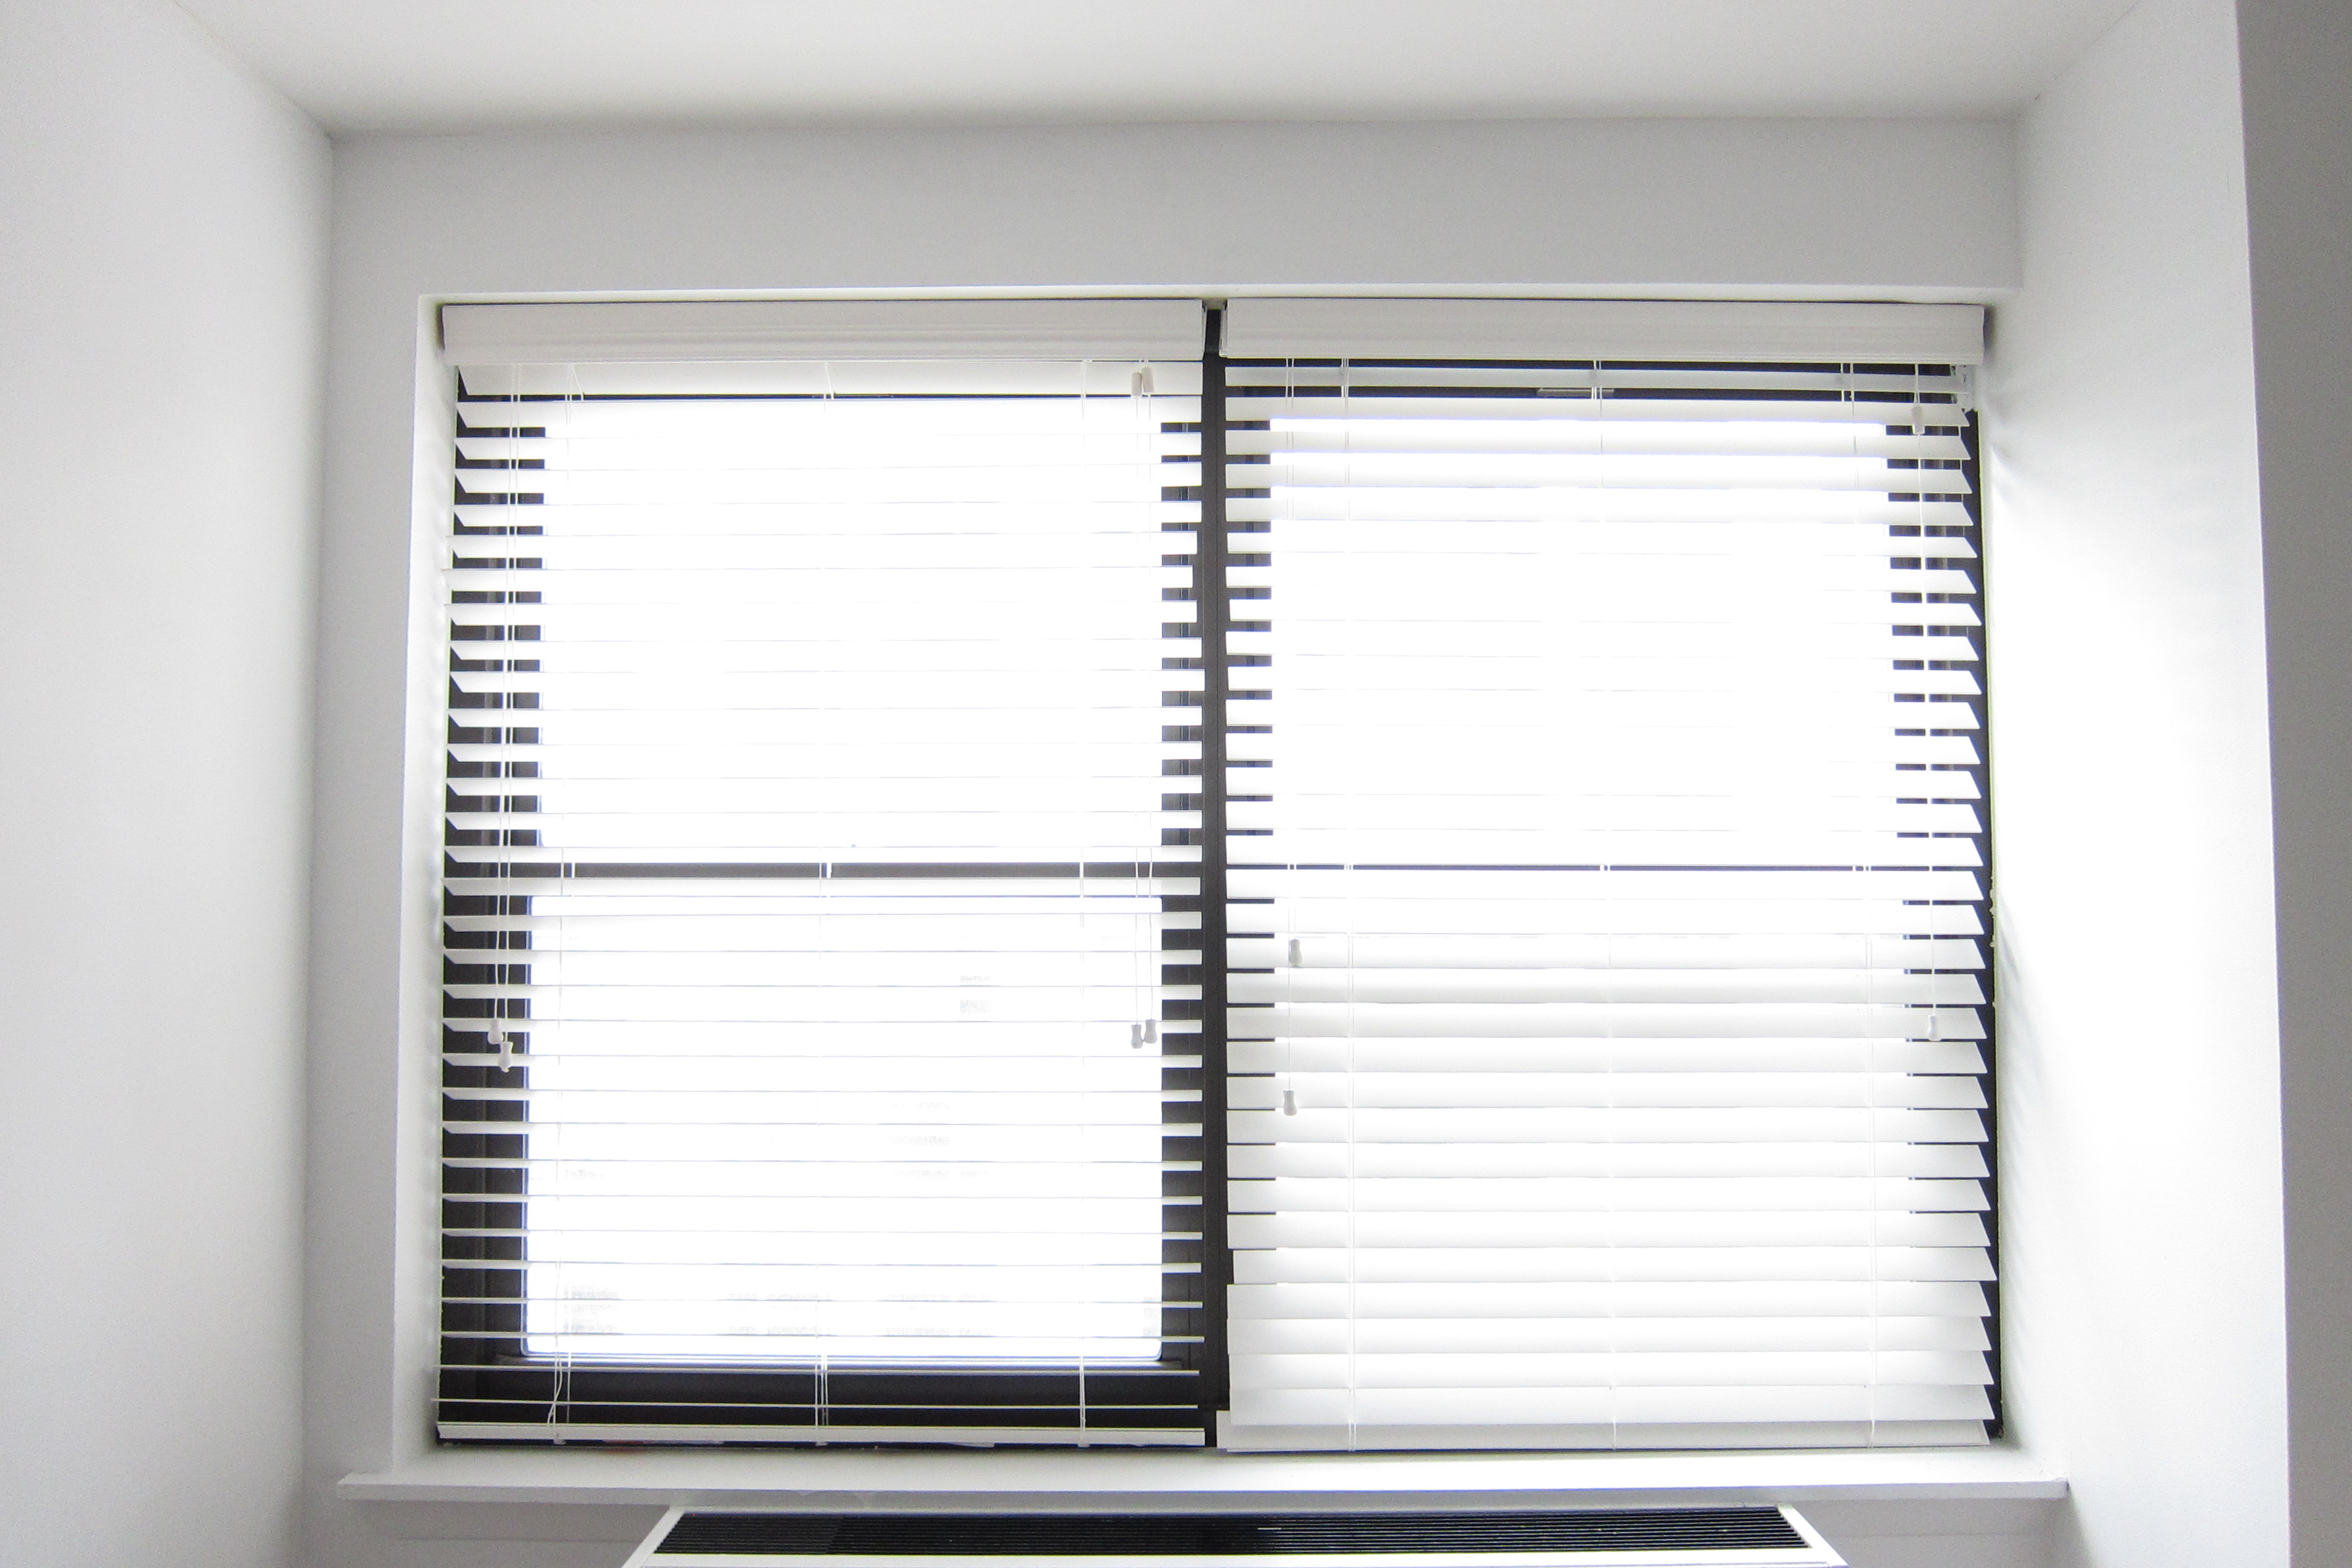 selectblinds window ideas department send of image children blinds the wand size percent full representing to chain parents safety cordless and from select com windows two for blind stunning emergency commits